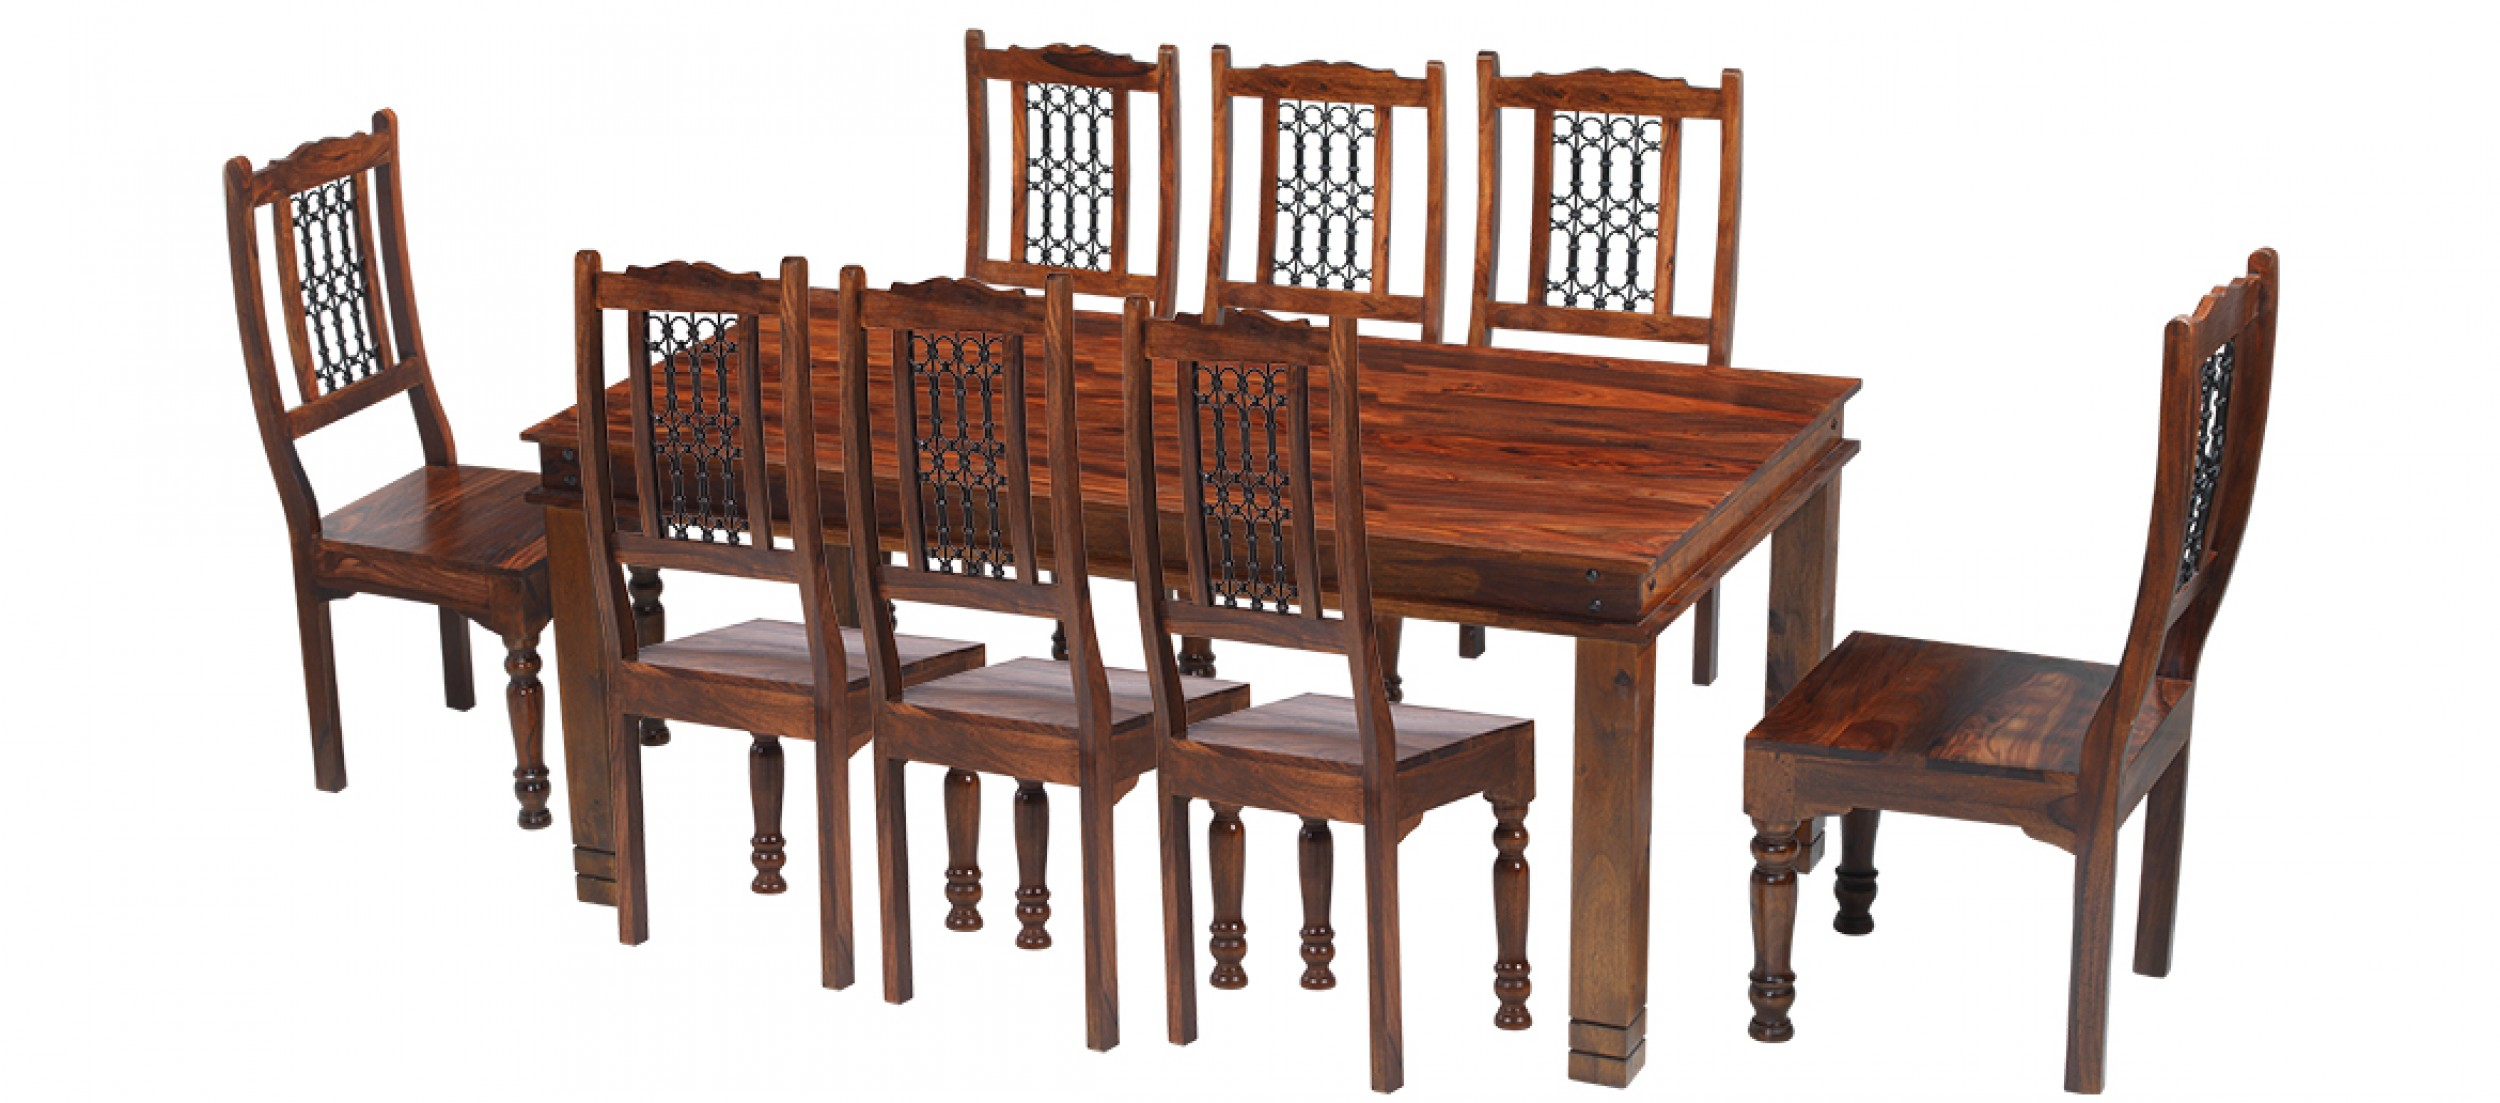 Jali Sheesham 180 cm Chunky Dining Table and 8 Chairs  : jali sheesham chunky sh 19 set 8 angle from www.quercusliving.co.uk size 2500 x 1103 jpeg 347kB